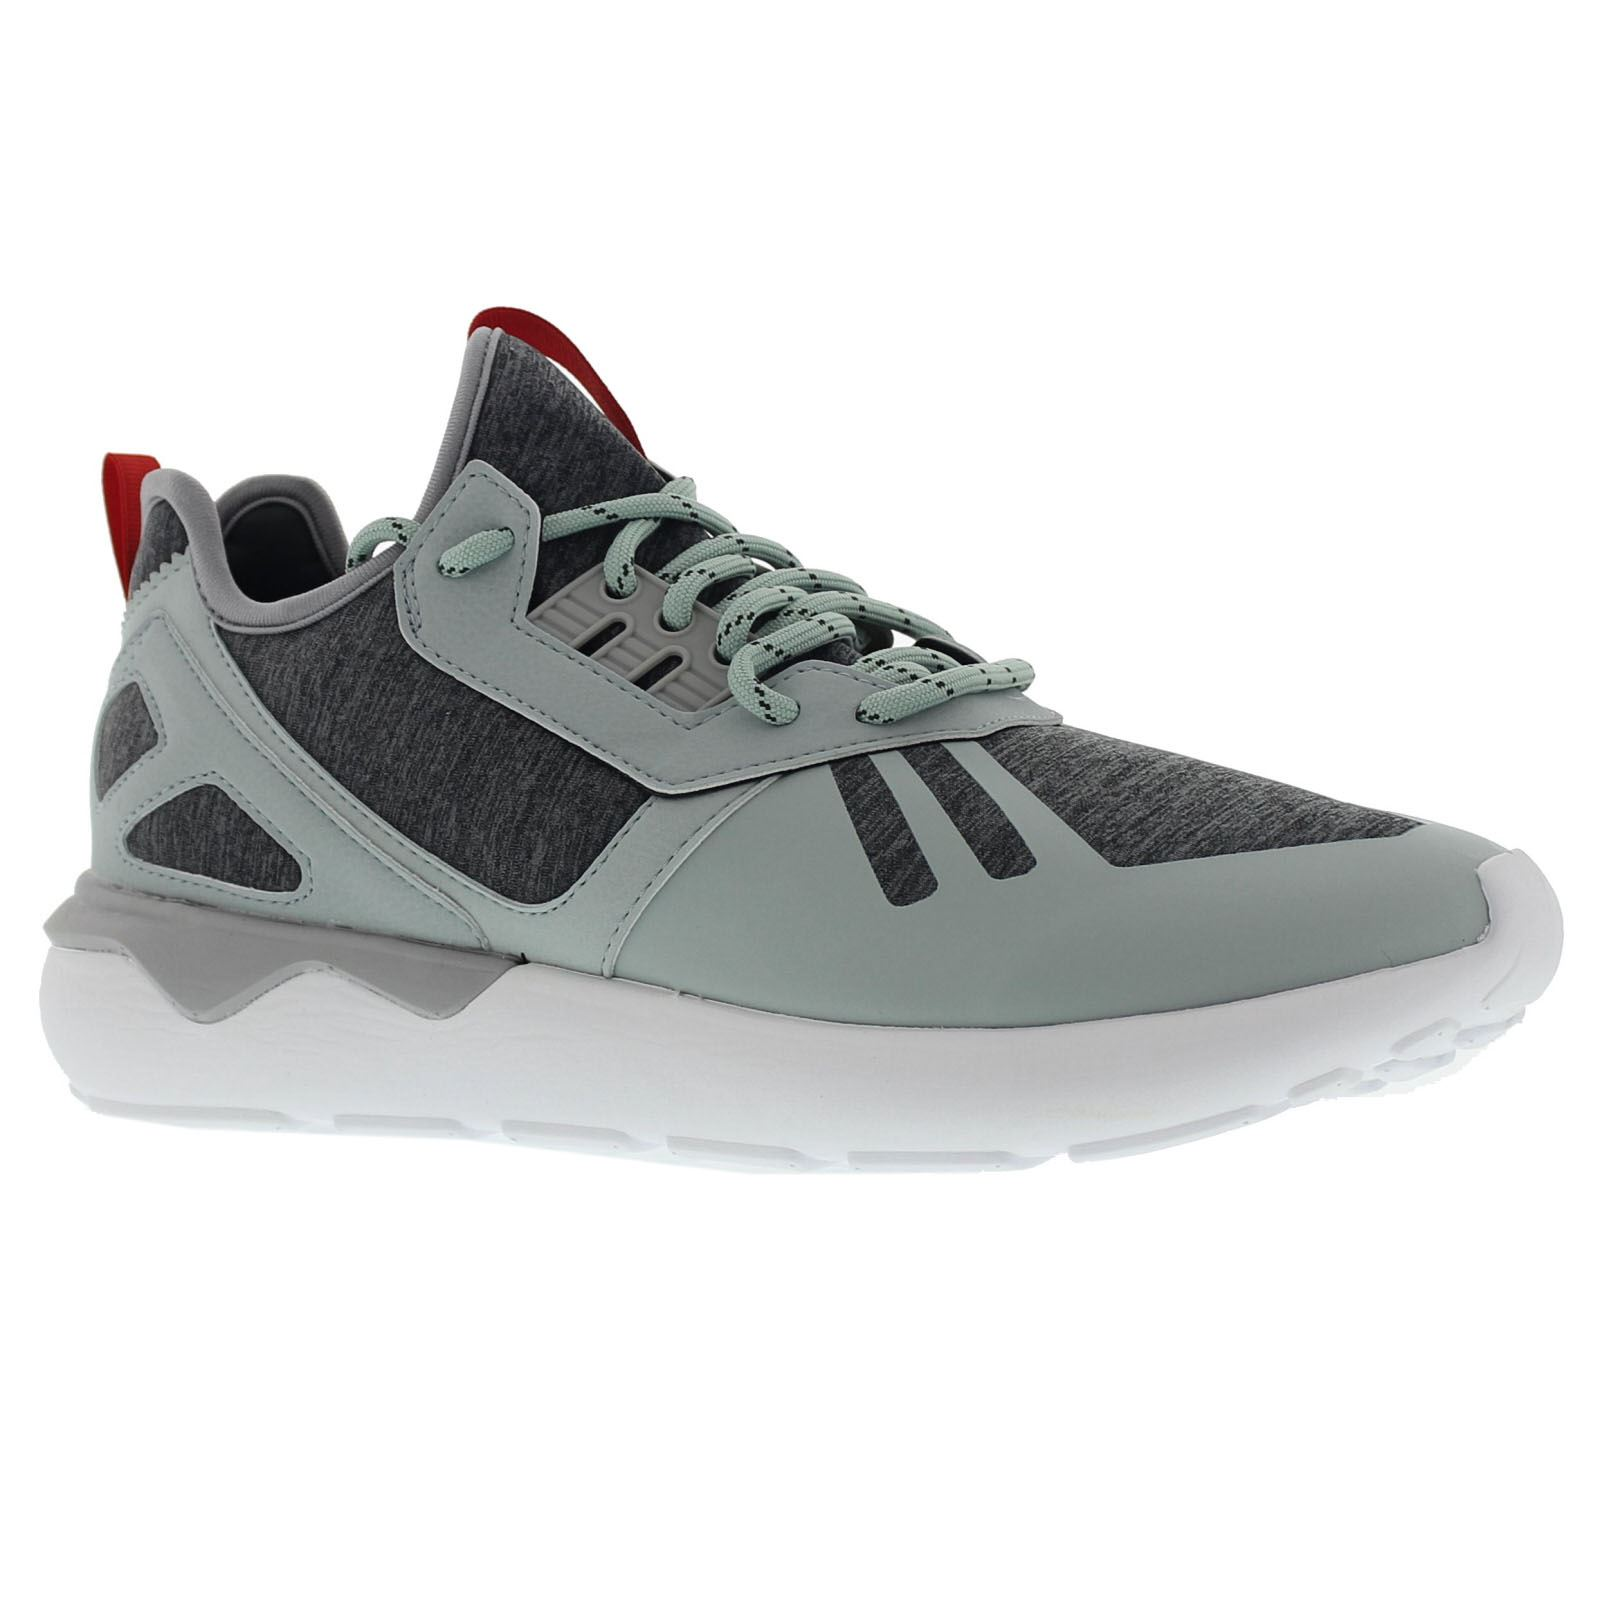 Adidas Tubular Mens White